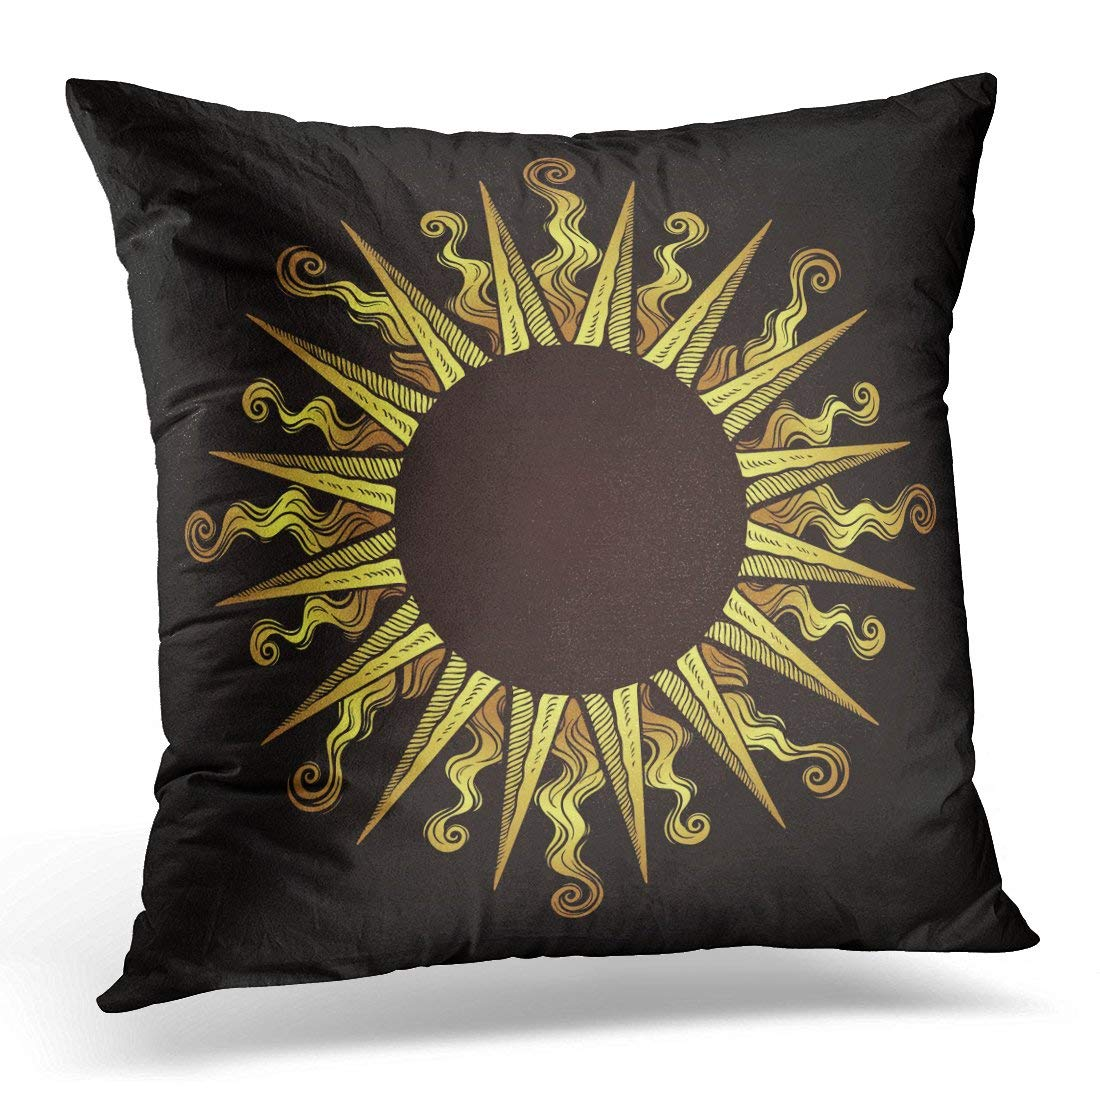 USART Greek Ornate Antique Gold Etching Style in Shape of Sun Rays Alchemy Pillows case 20x20 Inches Home Decor Sofa Cushion Cover